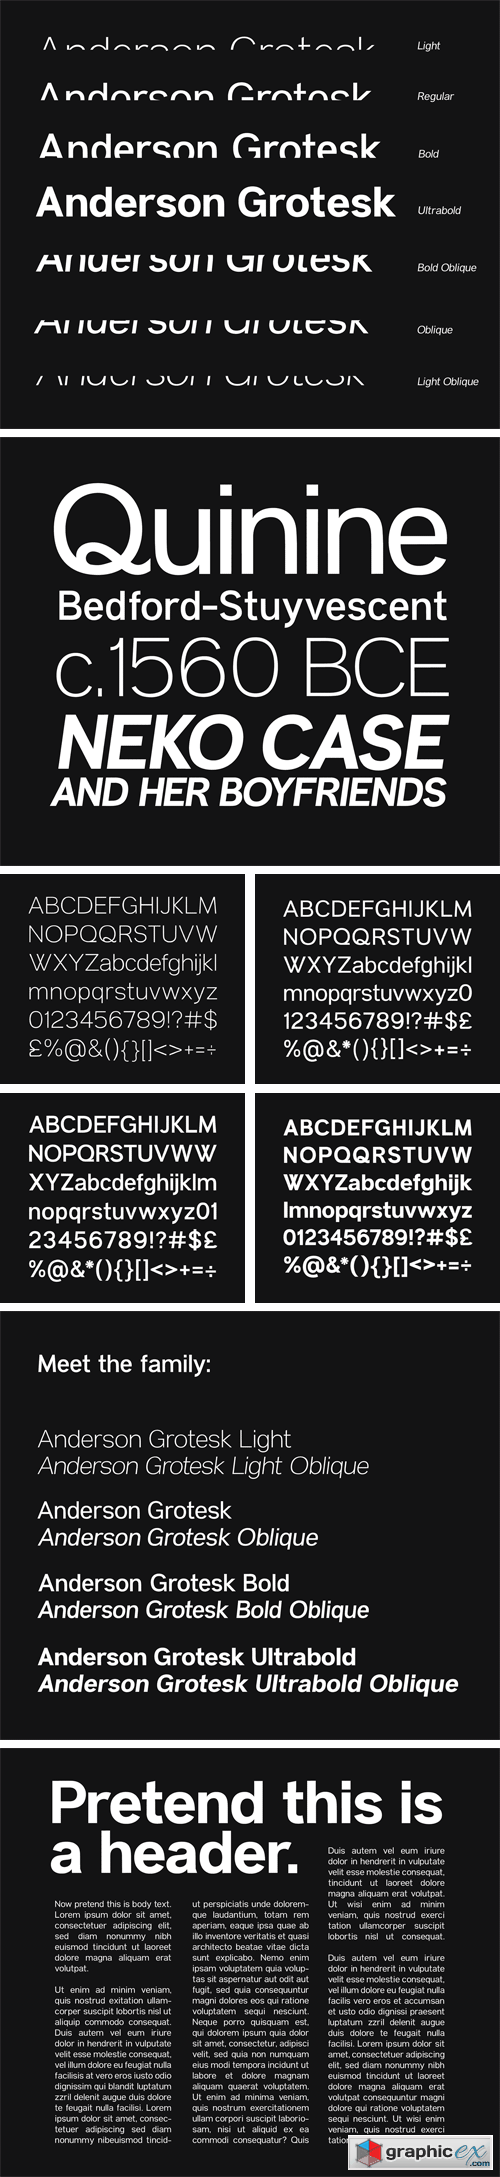 Anderson Grotesk Font Family